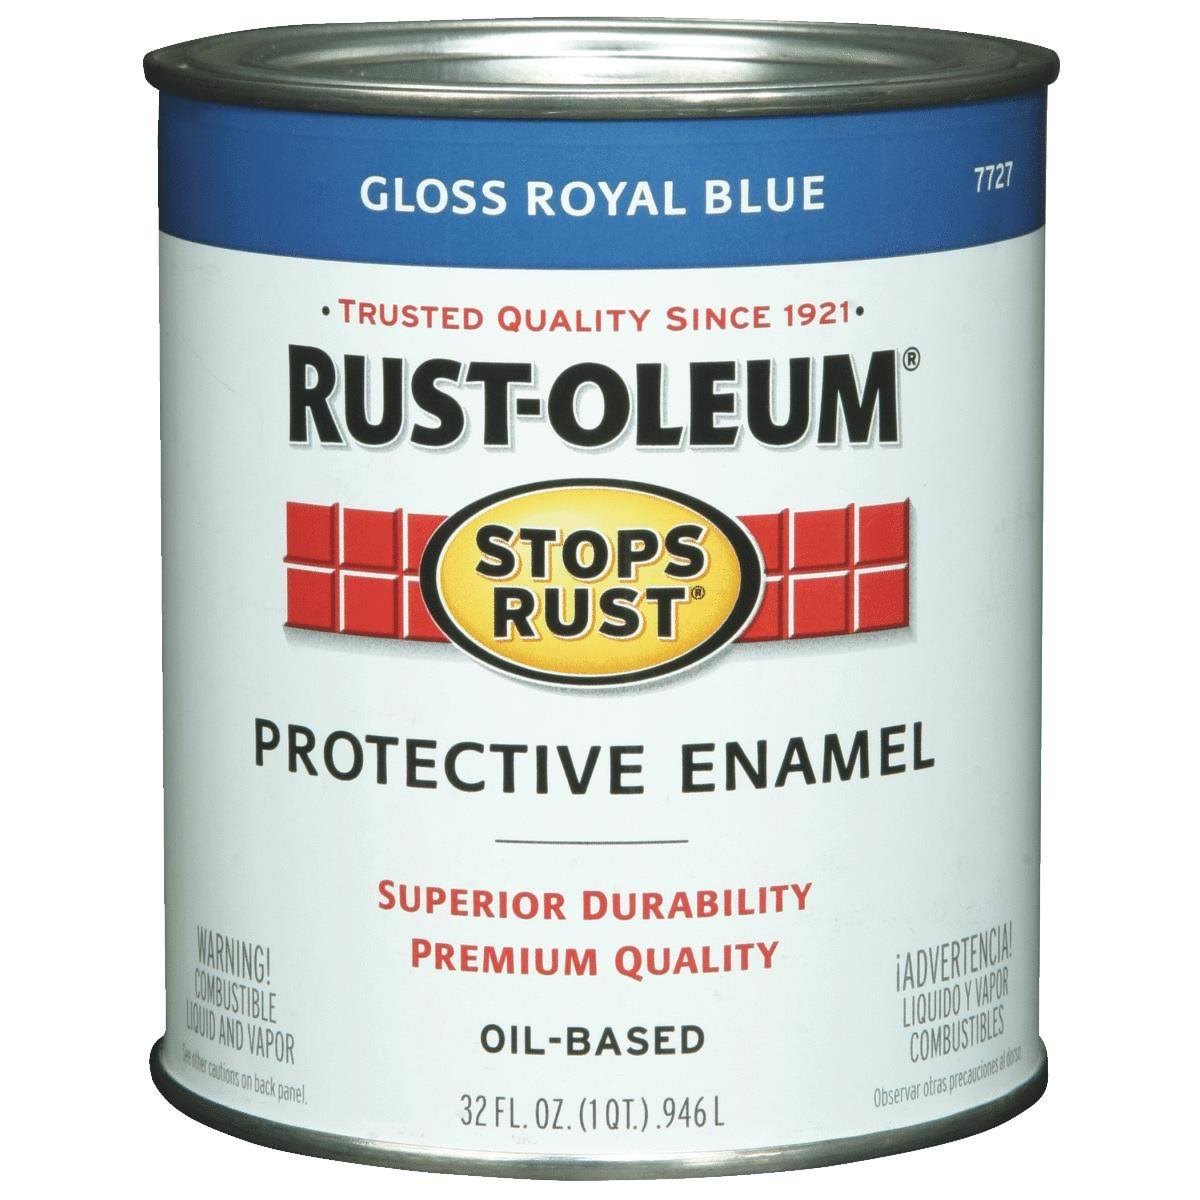 Rust-oleum Stops Rust Oil-base Paint - 32oz, Exterior Gloss, Royal Blue